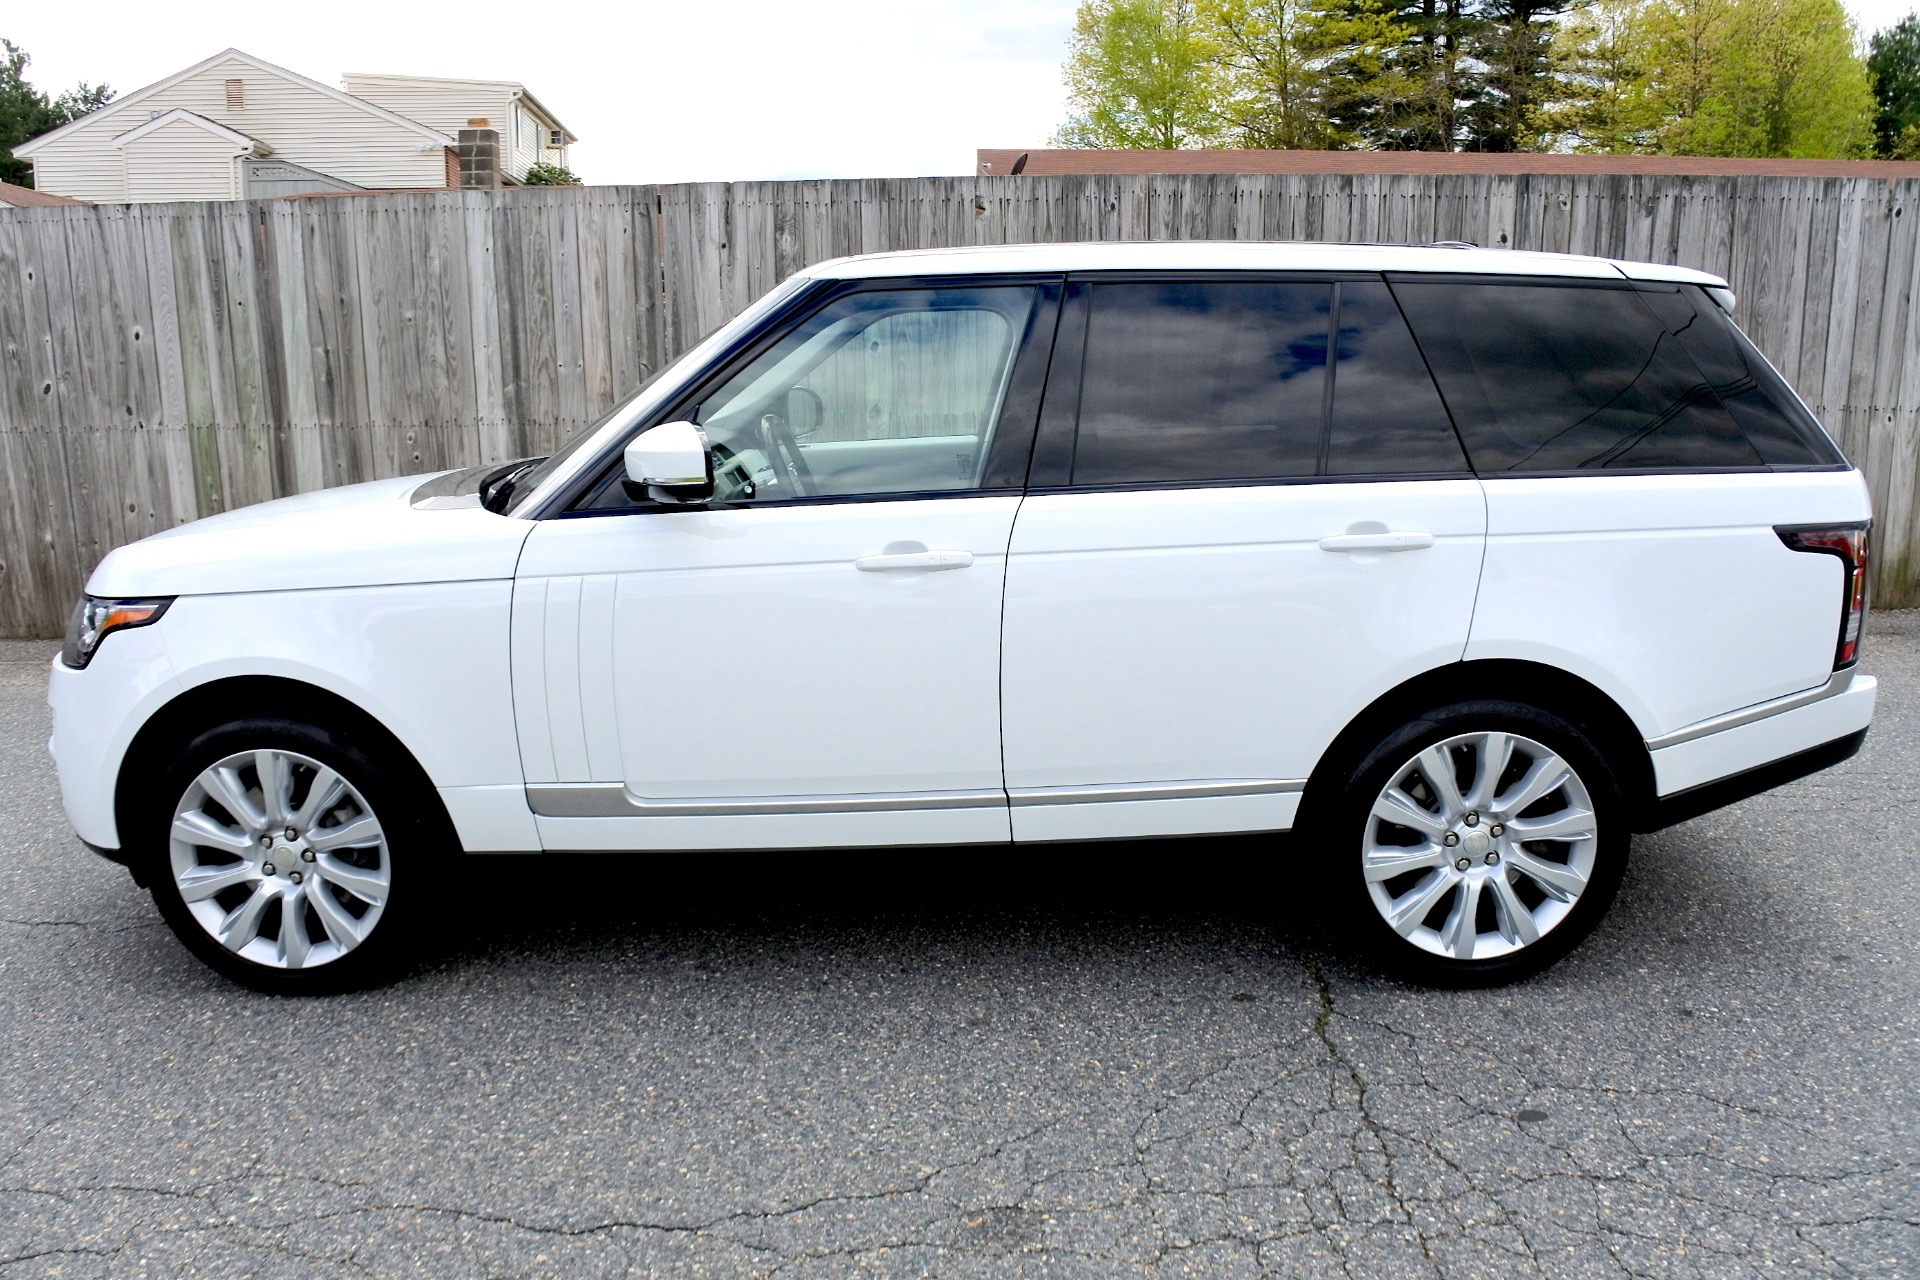 Used 2015 Land Rover Range Rover 4WD 4dr Supercharged Used 2015 Land Rover Range Rover 4WD 4dr Supercharged for sale  at Metro West Motorcars LLC in Shrewsbury MA 2